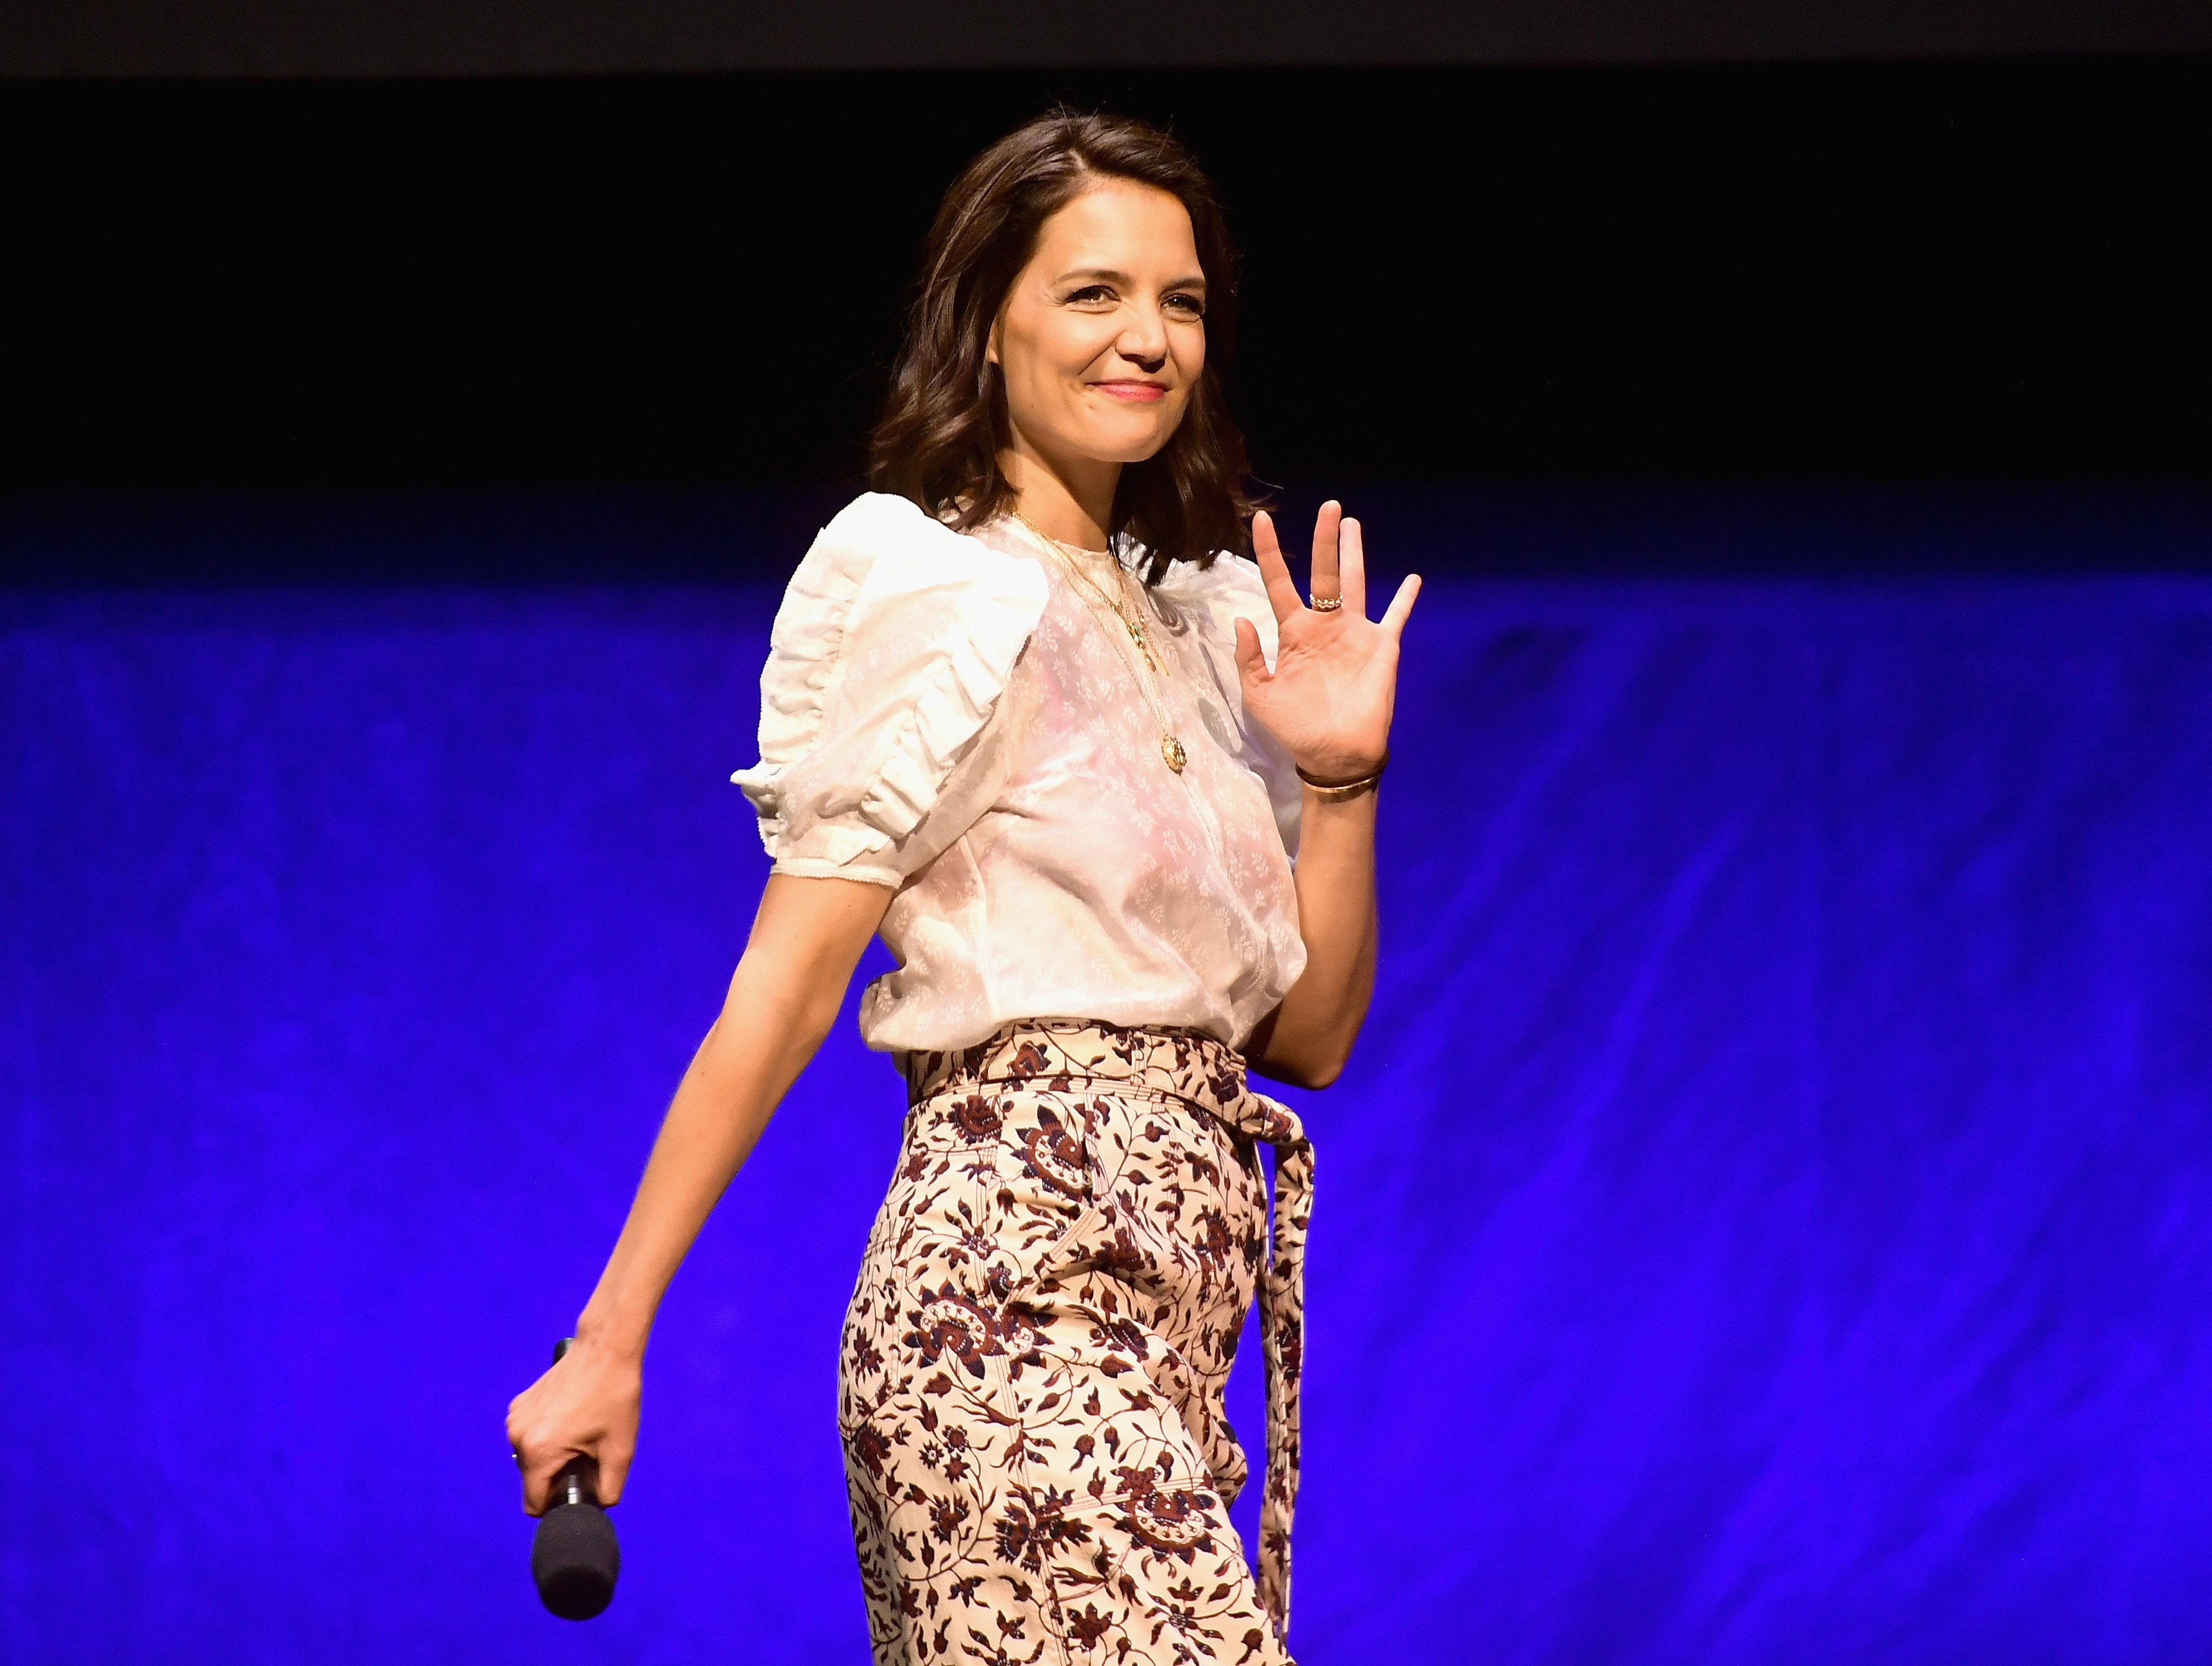 Katie Holmes attends CinemaCon 2019 in Las Vegas, Nevada on April 2, 2019 | Photo: Getty Images